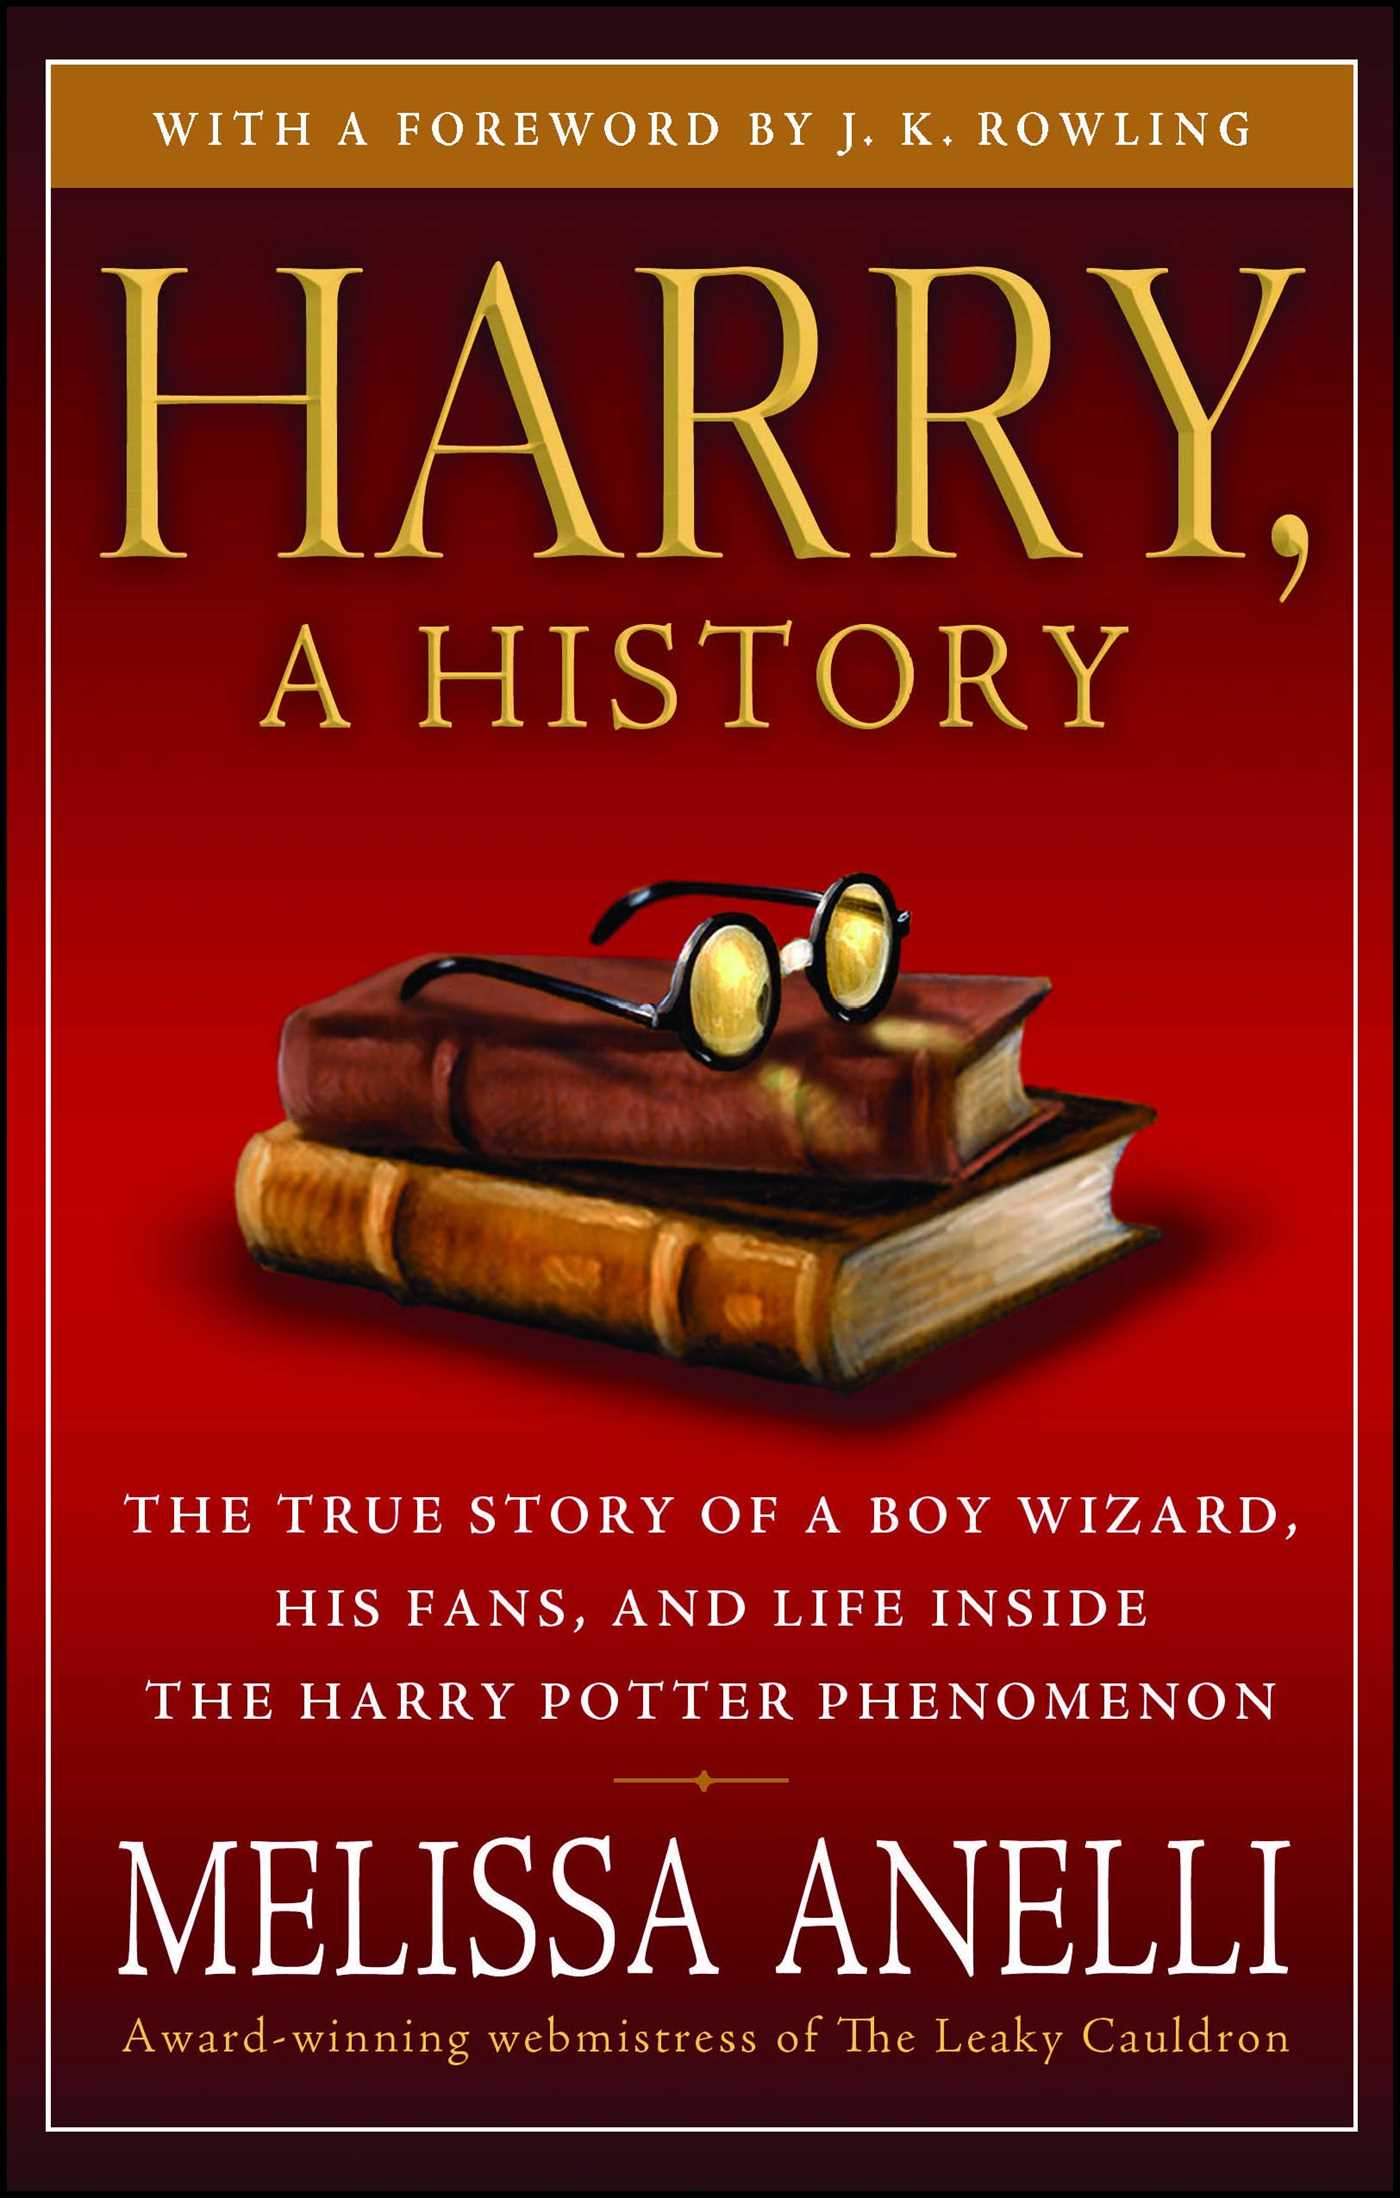 Harry-a-history-9781416554950_hr